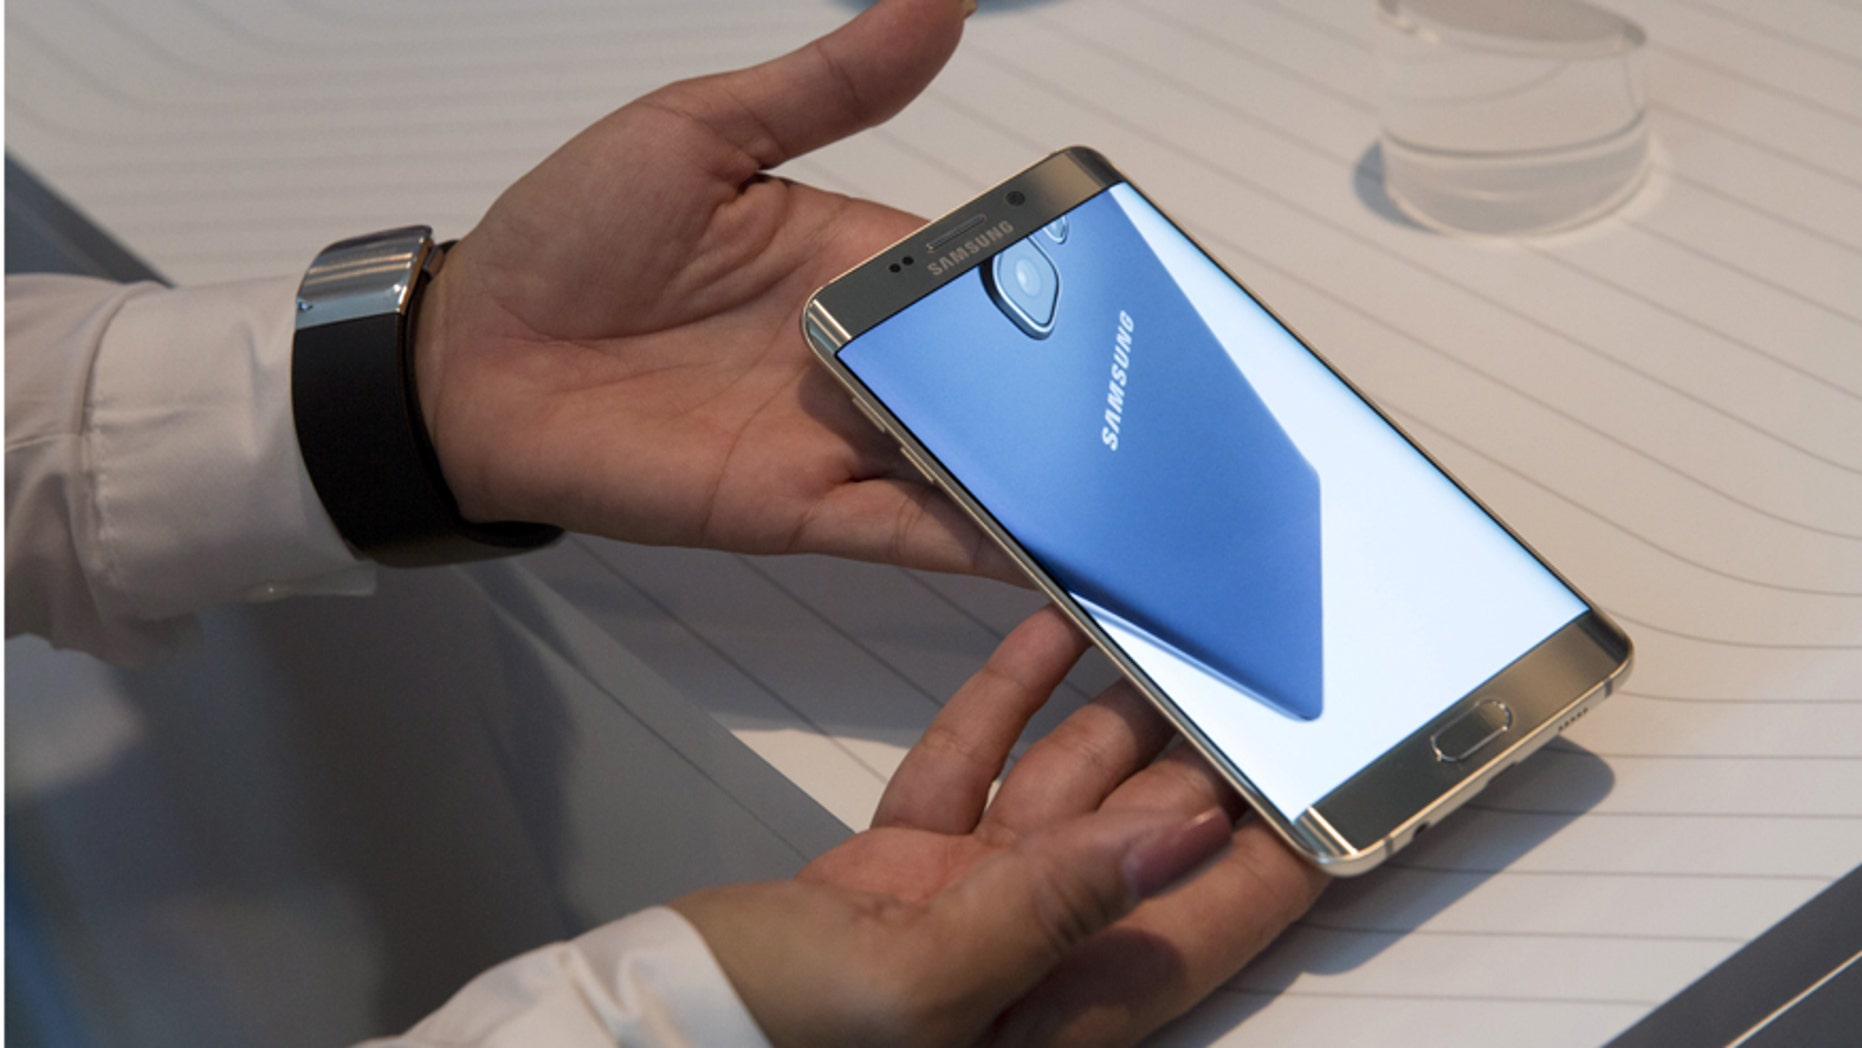 A product expert holds a Samsung Galaxy S6 Edge+ at the product's launch event in New York Aug. 13, 2015.